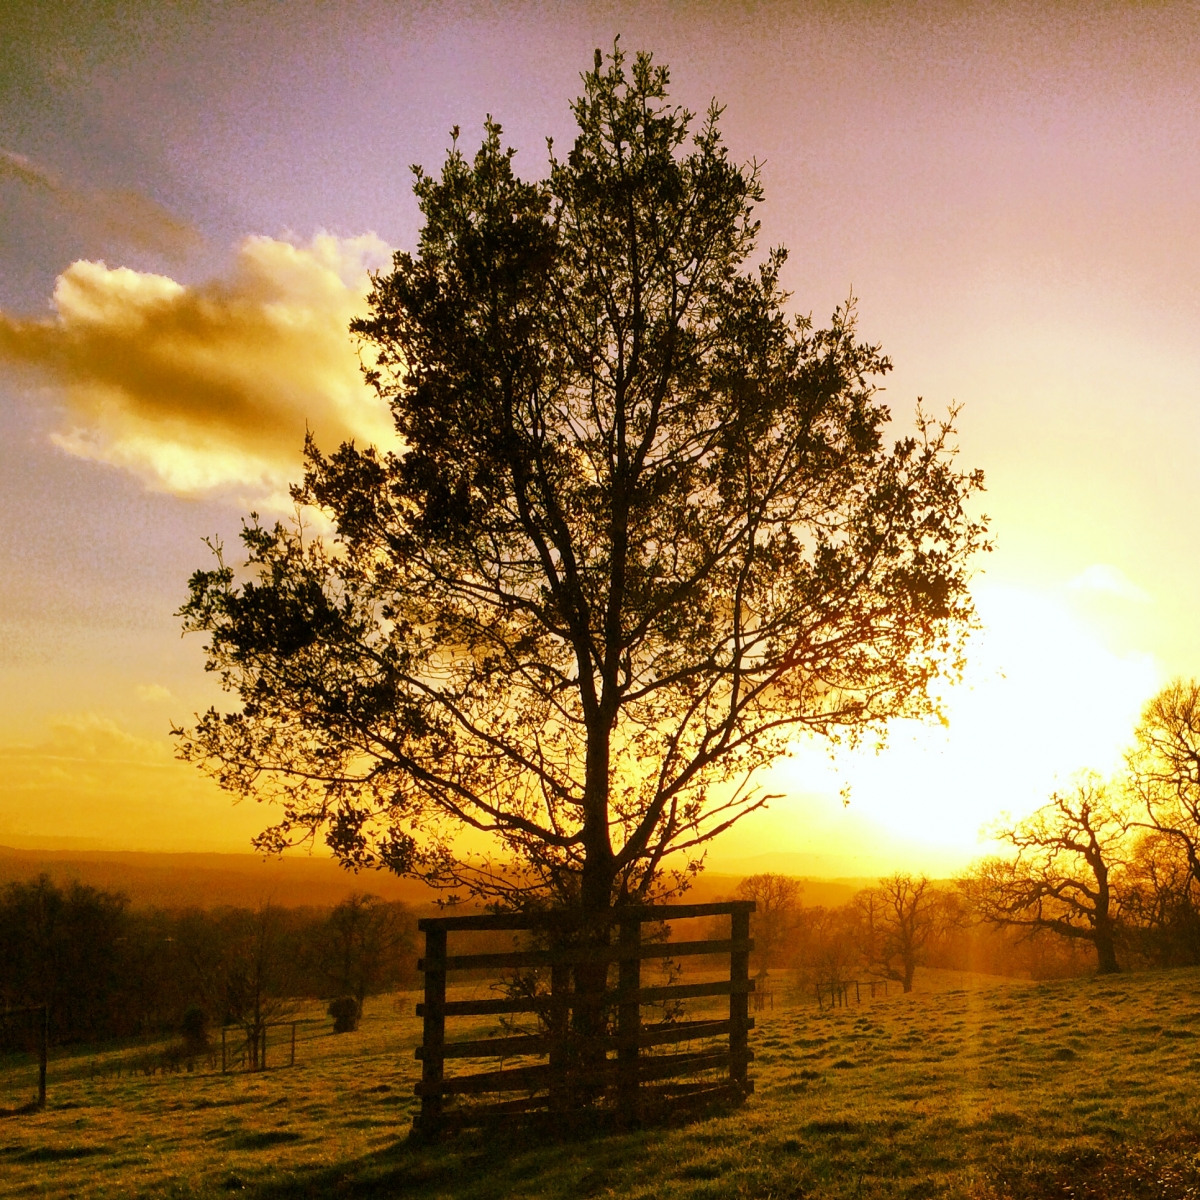 Sunset on Leith Hill, Surrey